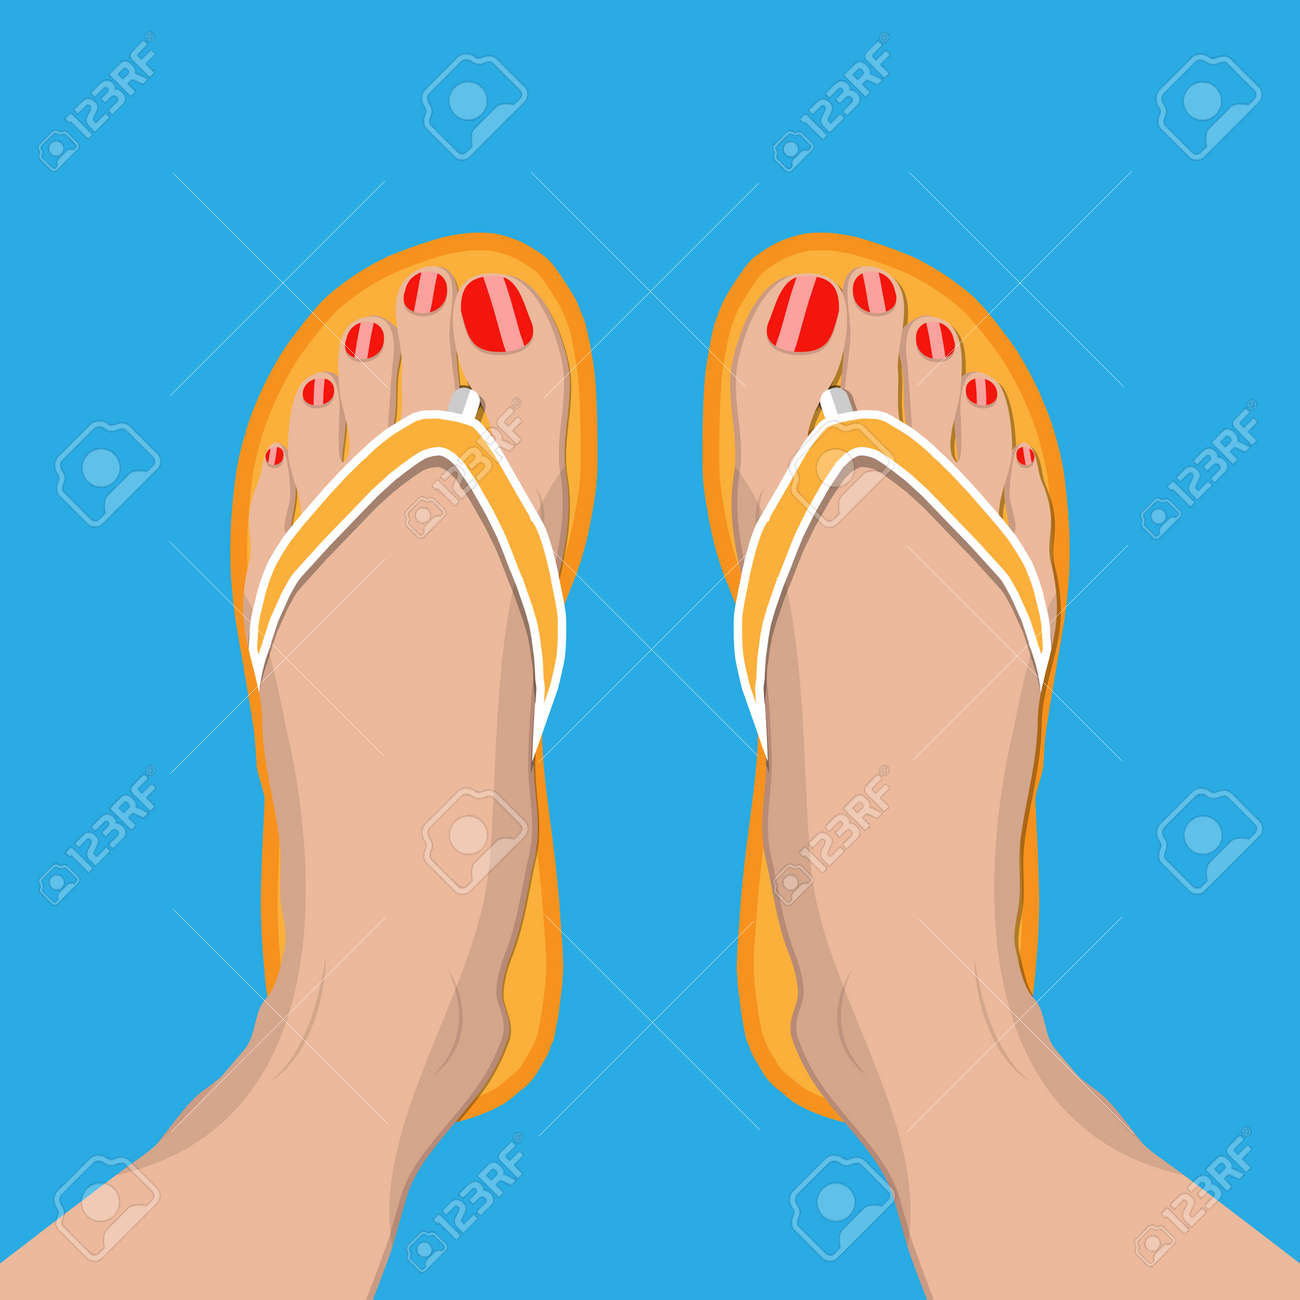 16b86fabb1d8 Female feet with red pedicure in summer flip-flops. Woman in slippers.  Vector